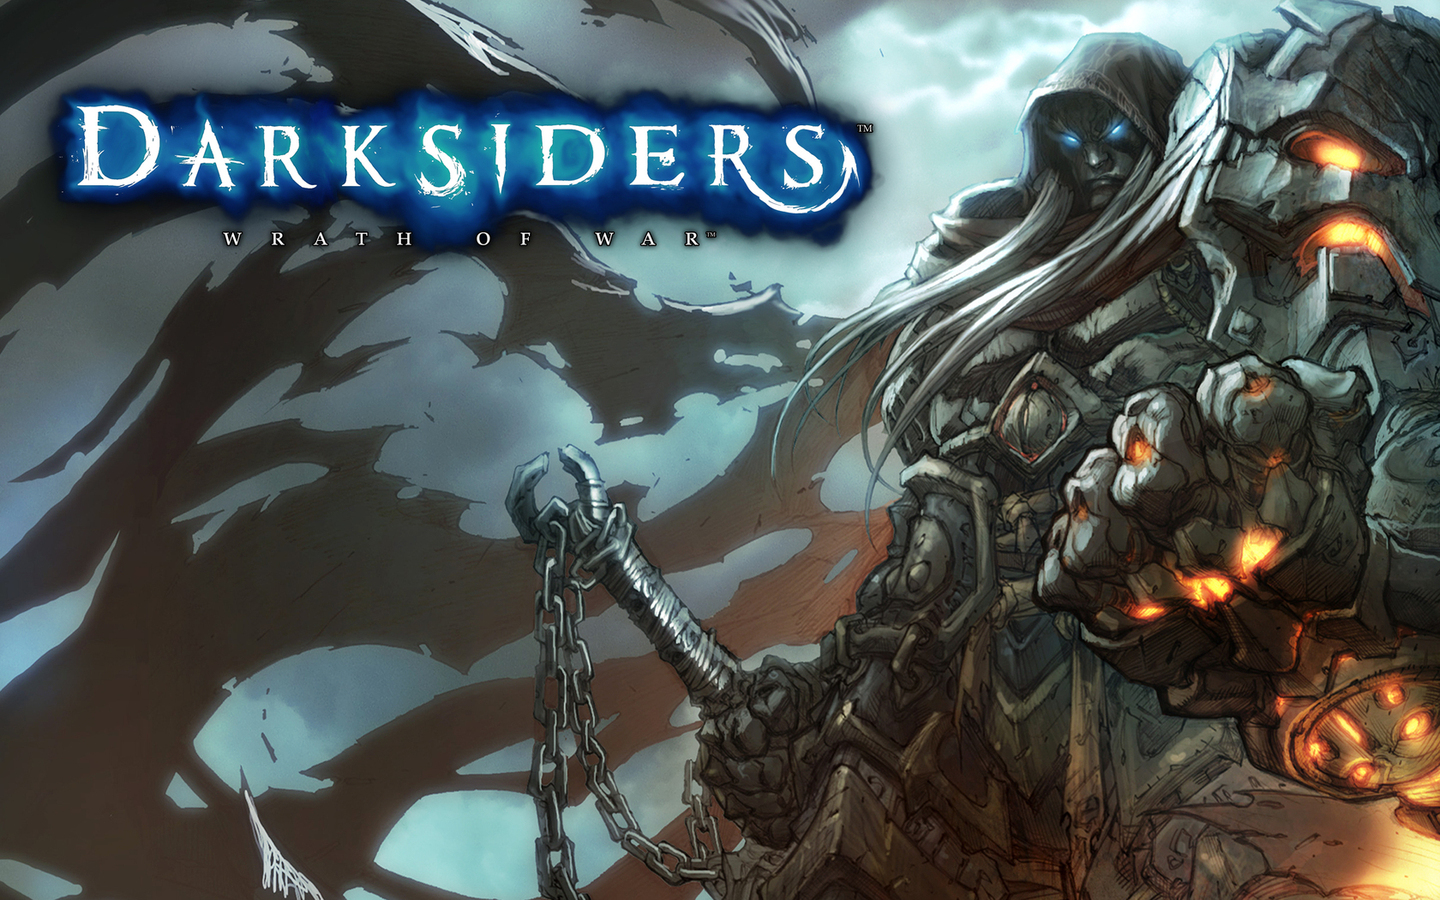 darksiders wallpaper 1440x900